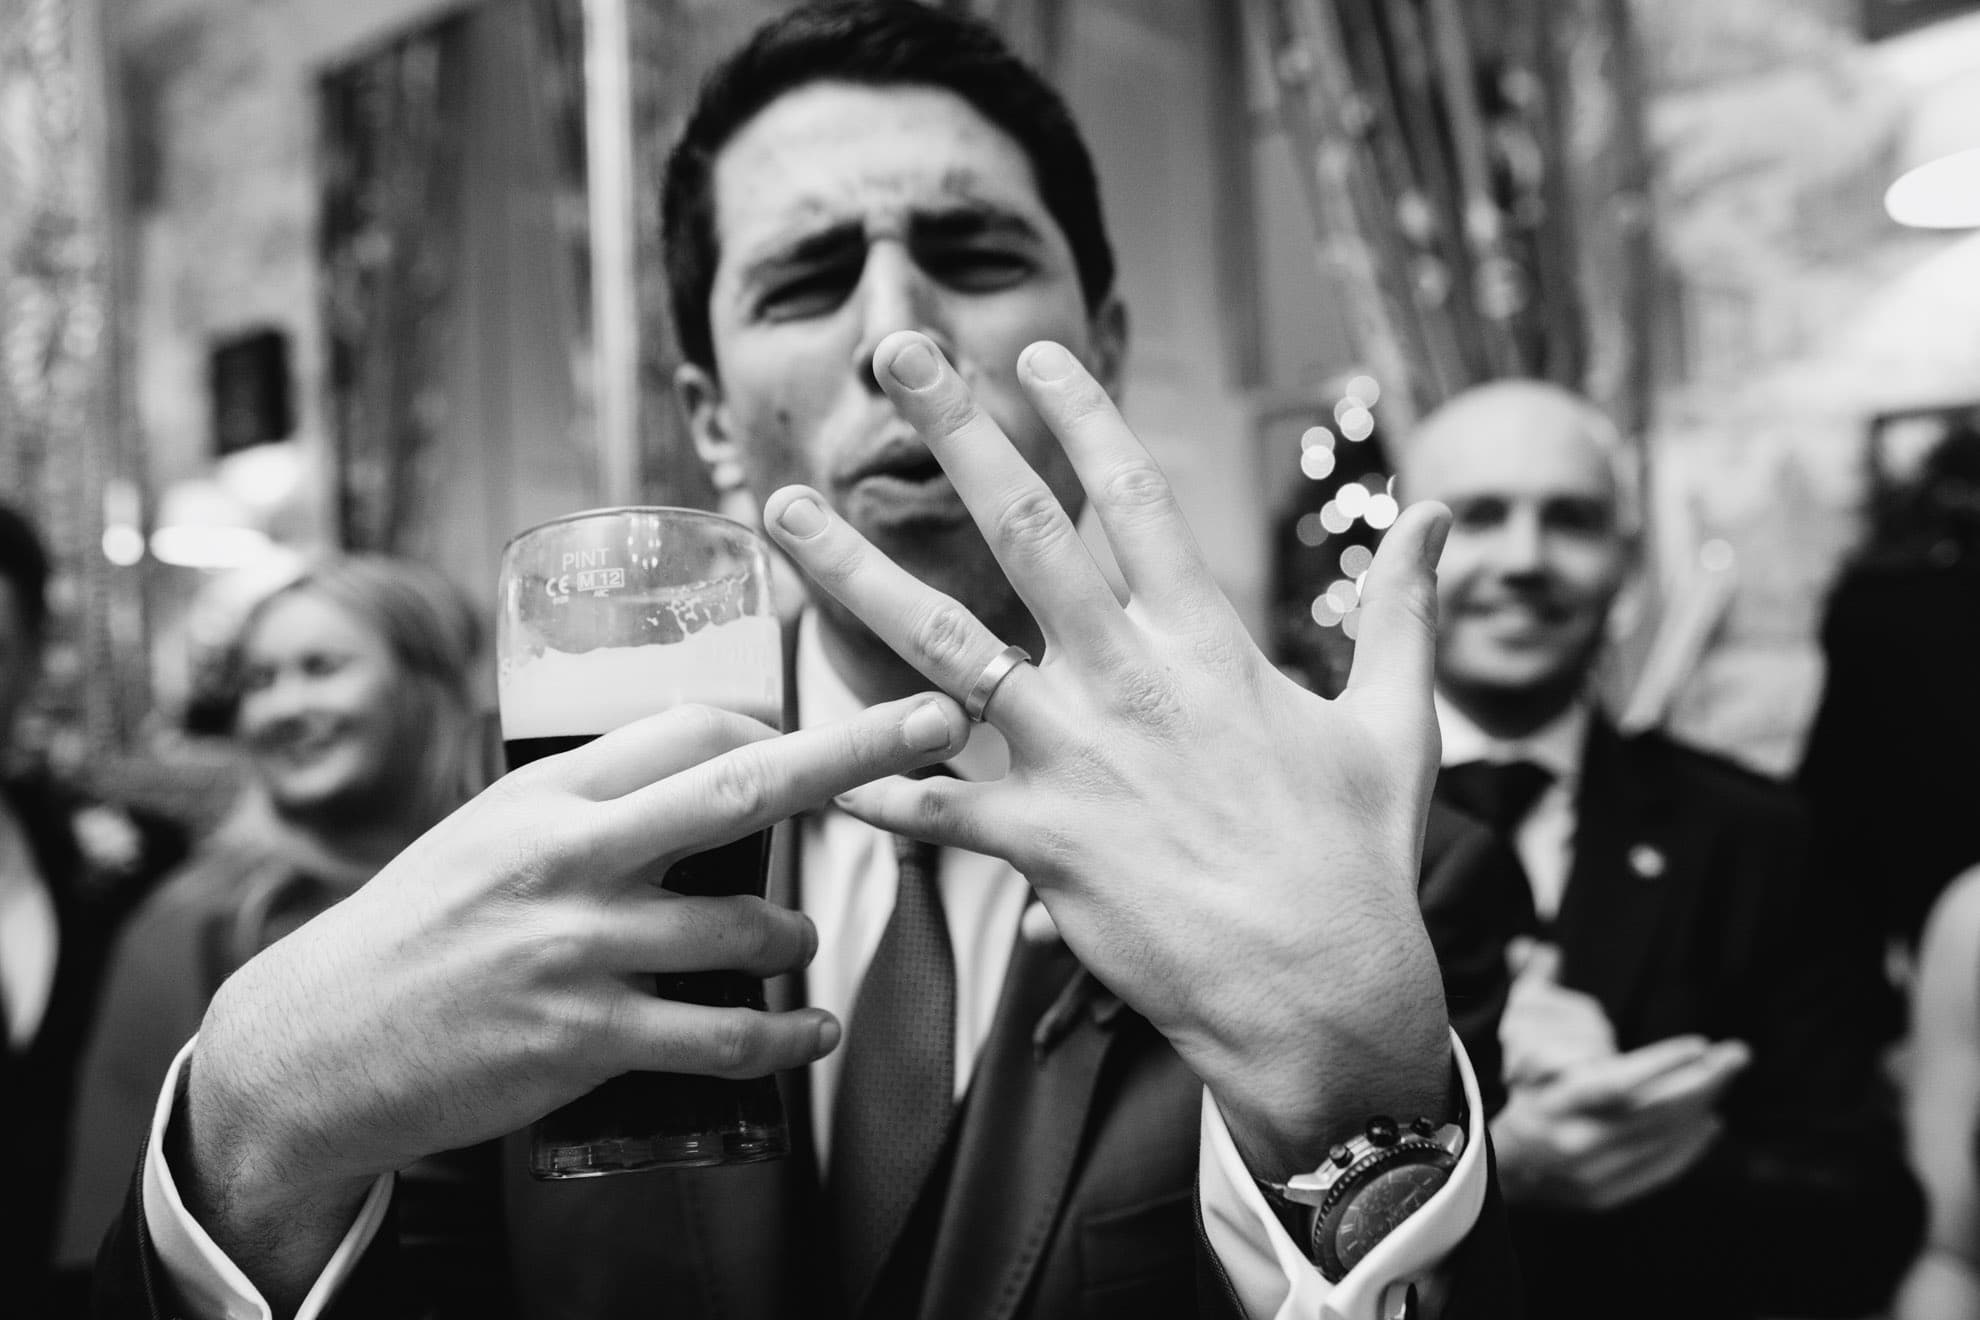 Groom showing off the wedding ring!